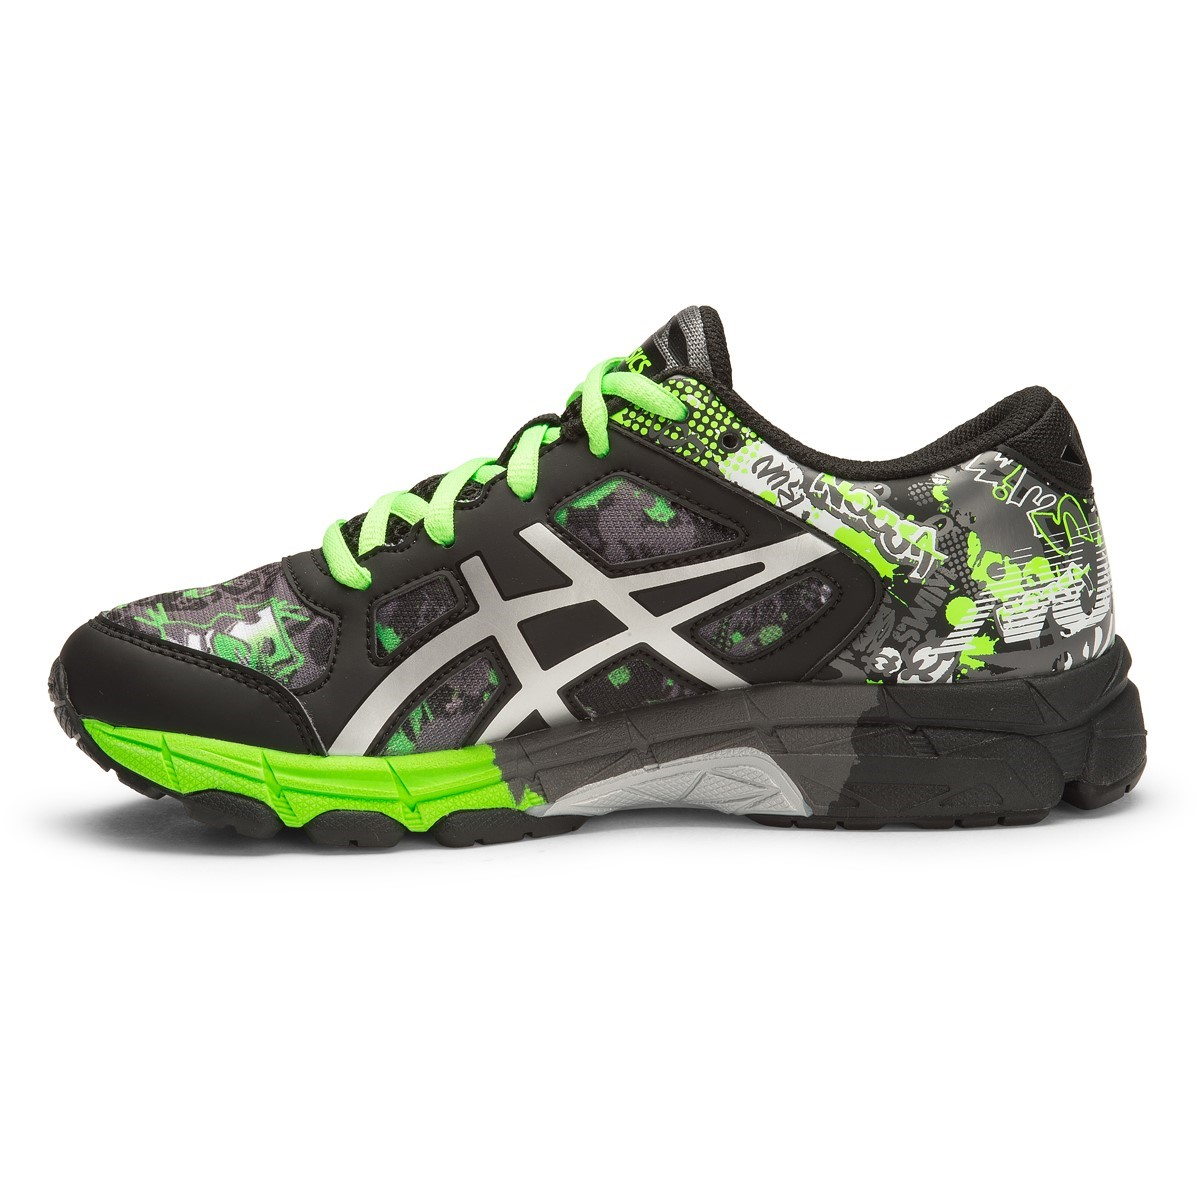 sale retailer d6fc9 9a2c1 Asics Gel Noosa Tri 11 GS - Kids Boys Running Shoes - Carbon Silver